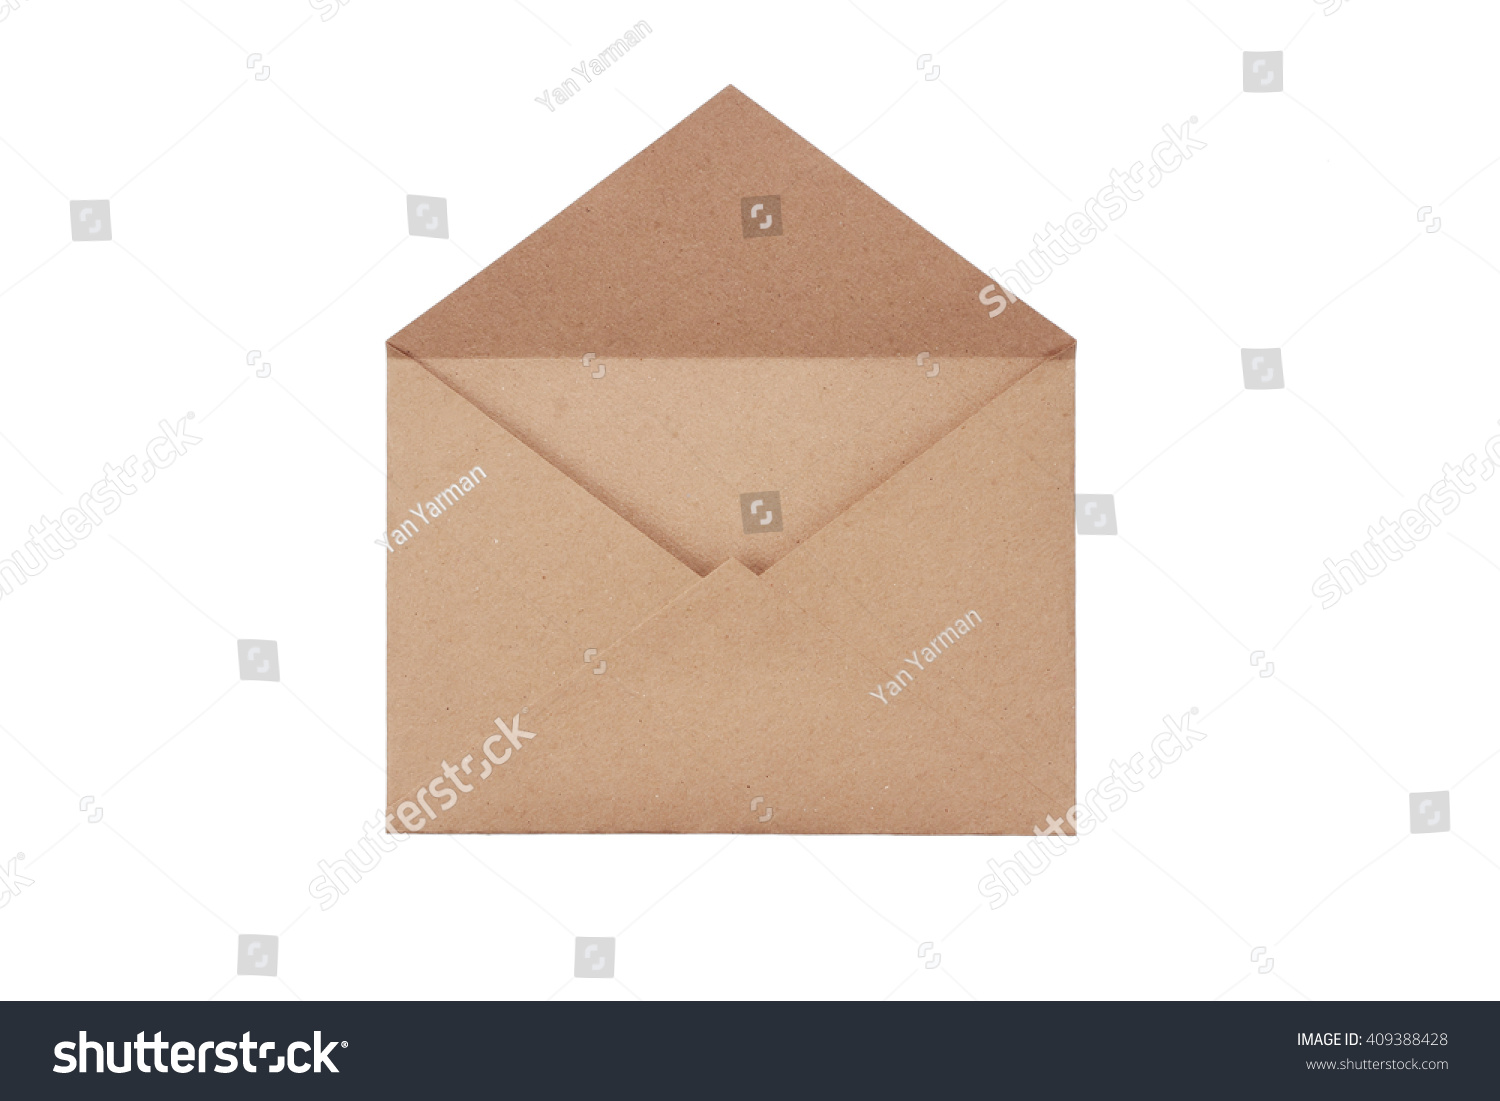 Brown craft envelope isolated on white background